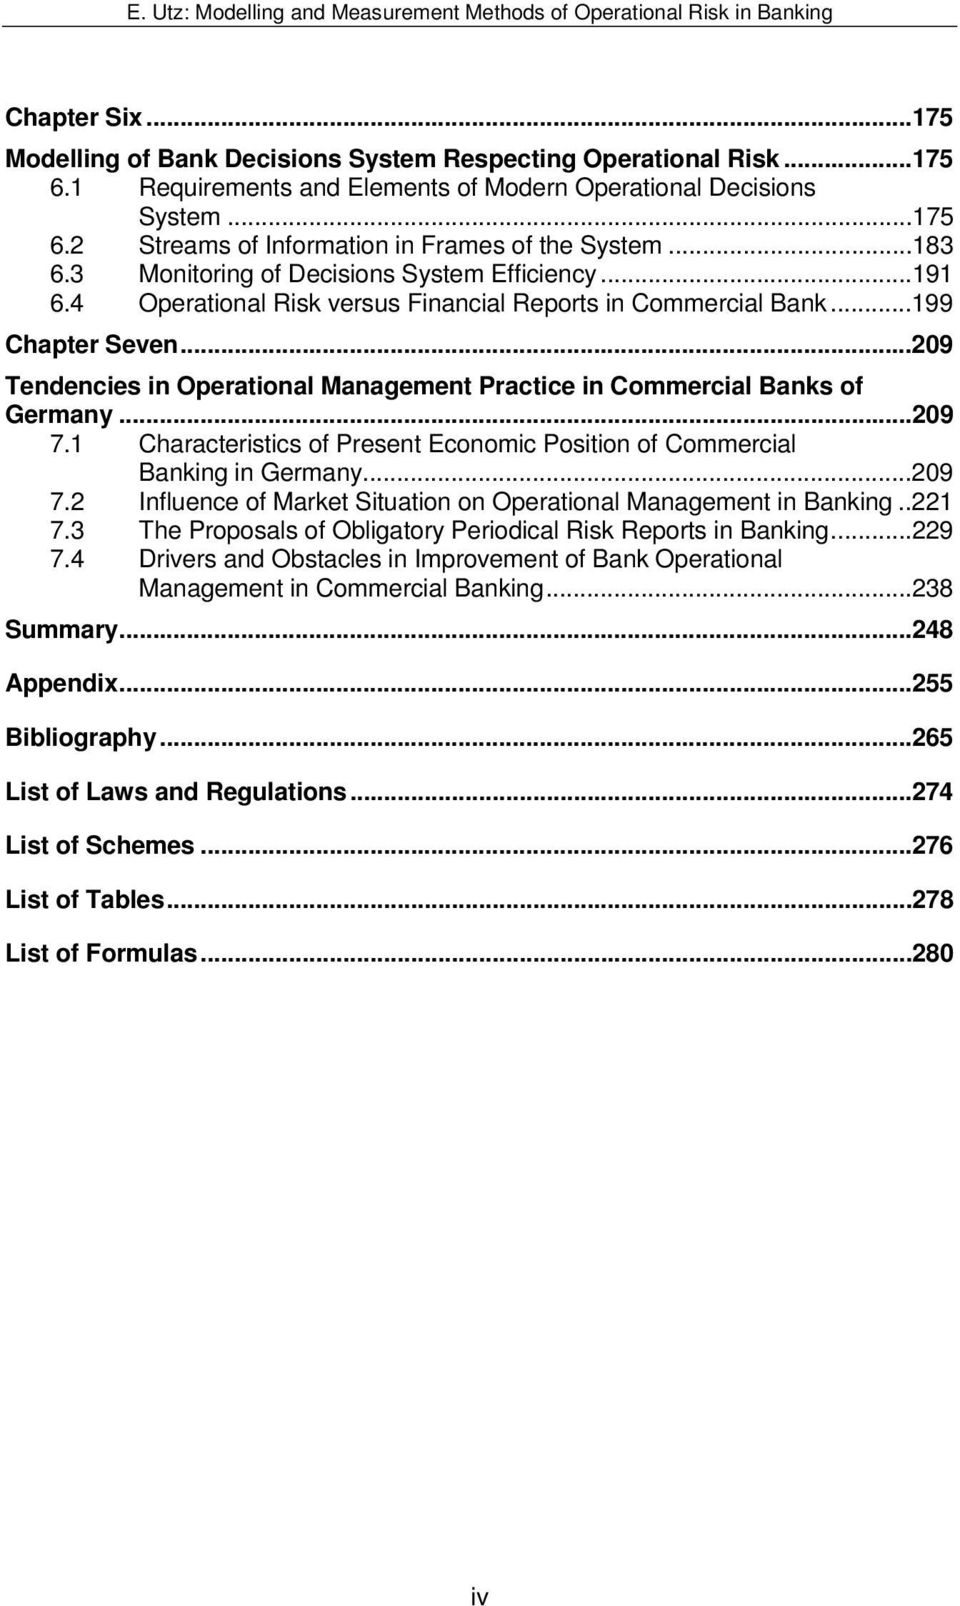 ..209 Tendencies in Operational Management Practice in Commercial Banks of Germany...209 7.1 Characteristics of Present Economic Position of Commercial Banking in Germany...209 7.2 Influence of Market Situation on Operational Management in Banking.